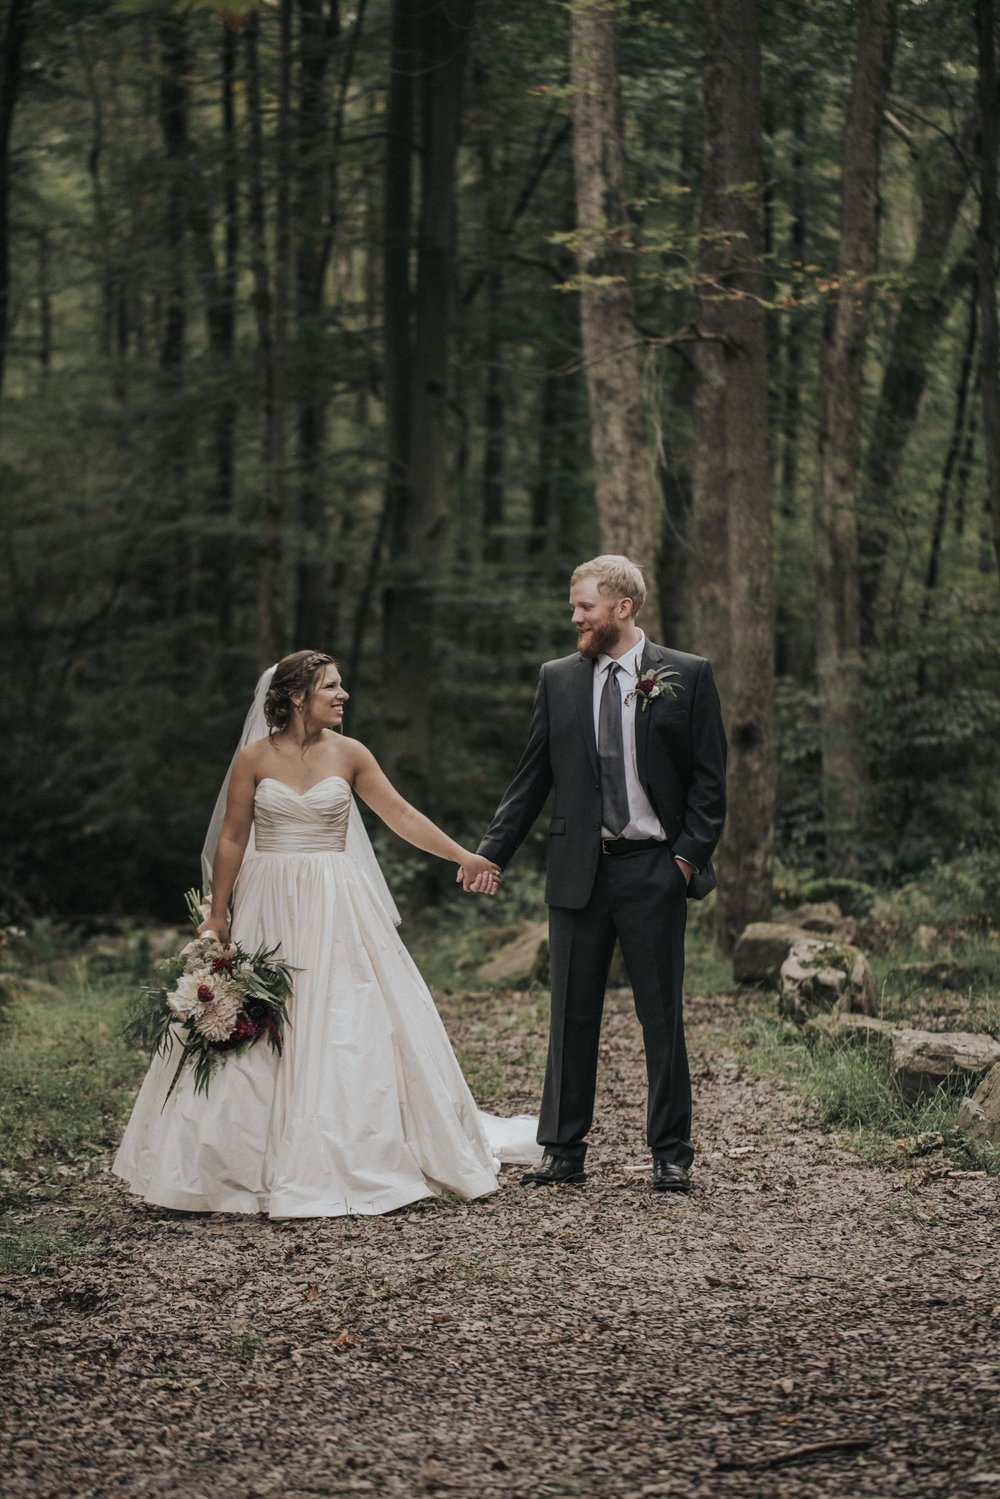 Bride and groom pose for wedding photos in the woods for rustic wedding in Farmington, PA planned by Exhale Events. Find more wedding inspiration at exhale-events.com!